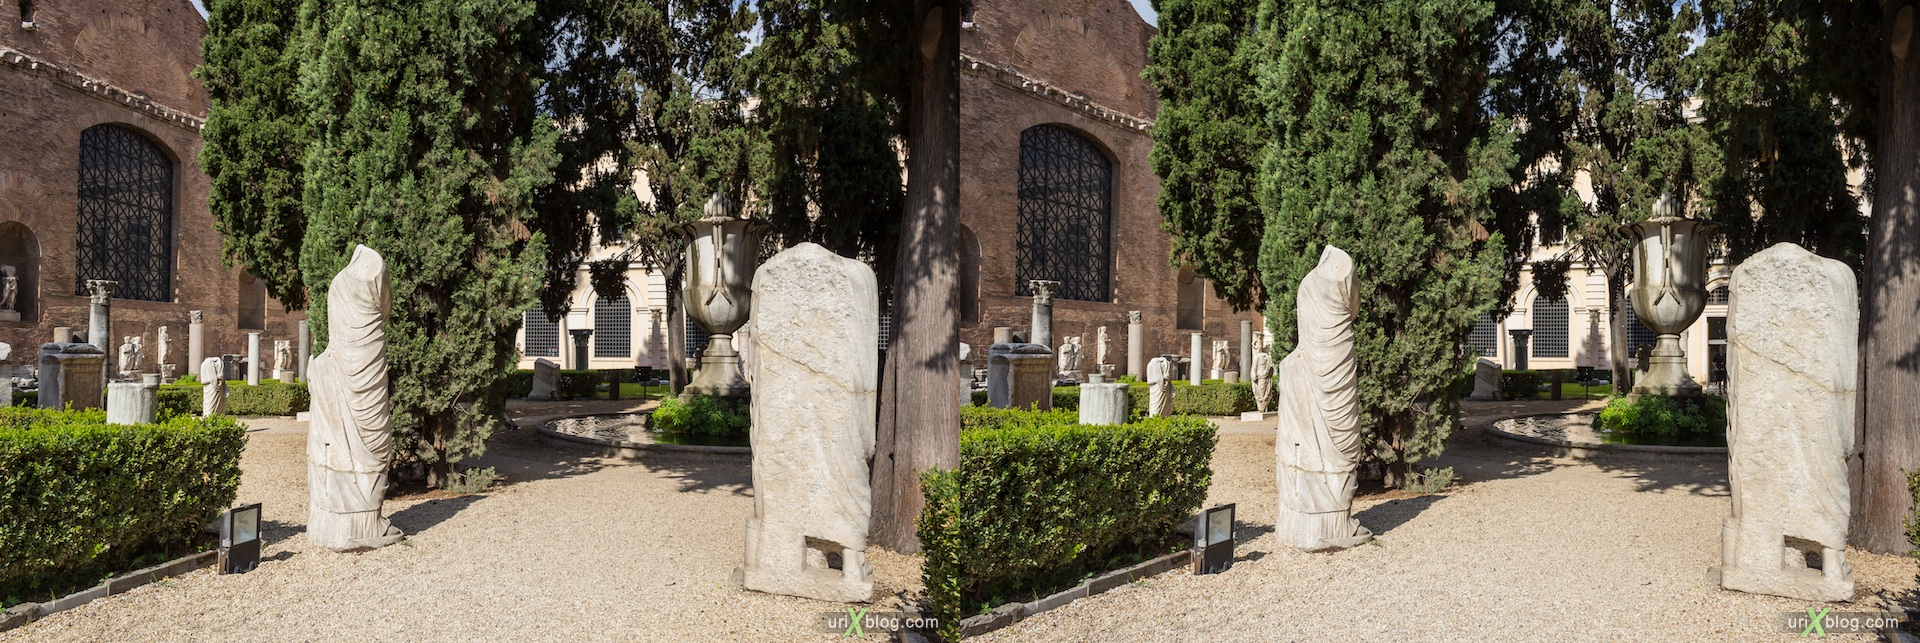 2012, National Museum of Rome, courtyard, fountain, Diocletian Baths, Rome, Italy, Europe, 3D, stereo pair, cross-eyed, crossview, cross view stereo pair